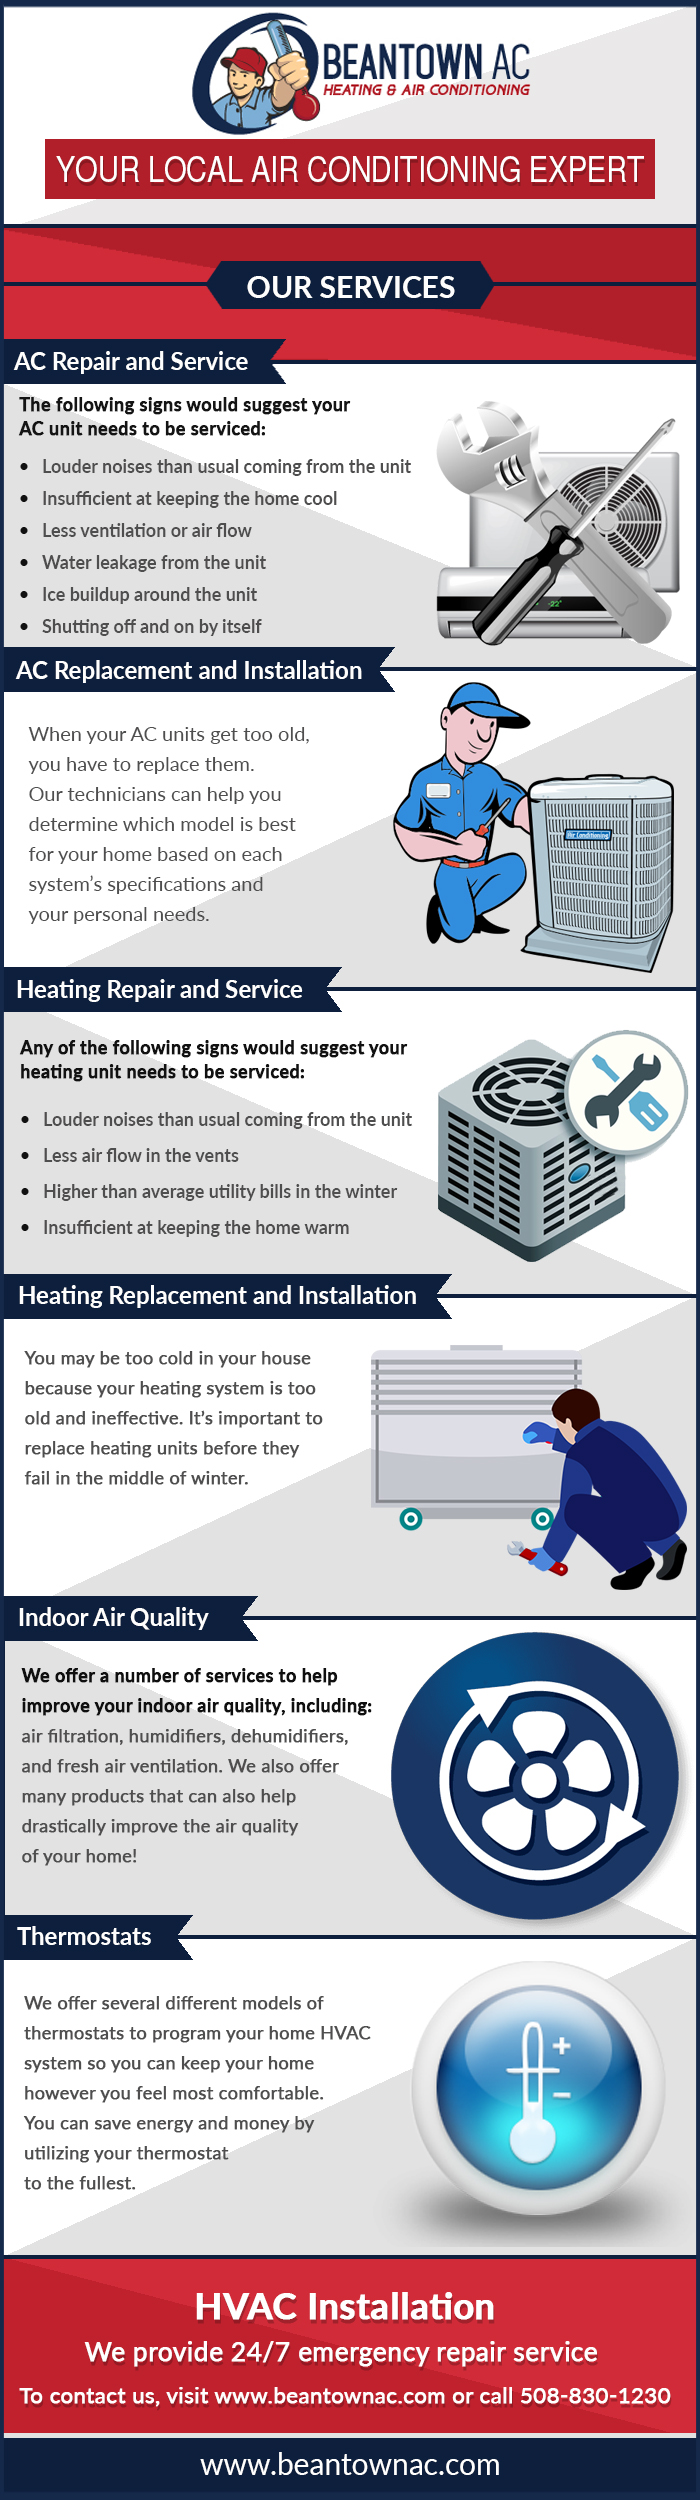 Pin by Beantown AC on affordable air conditioning Hvac